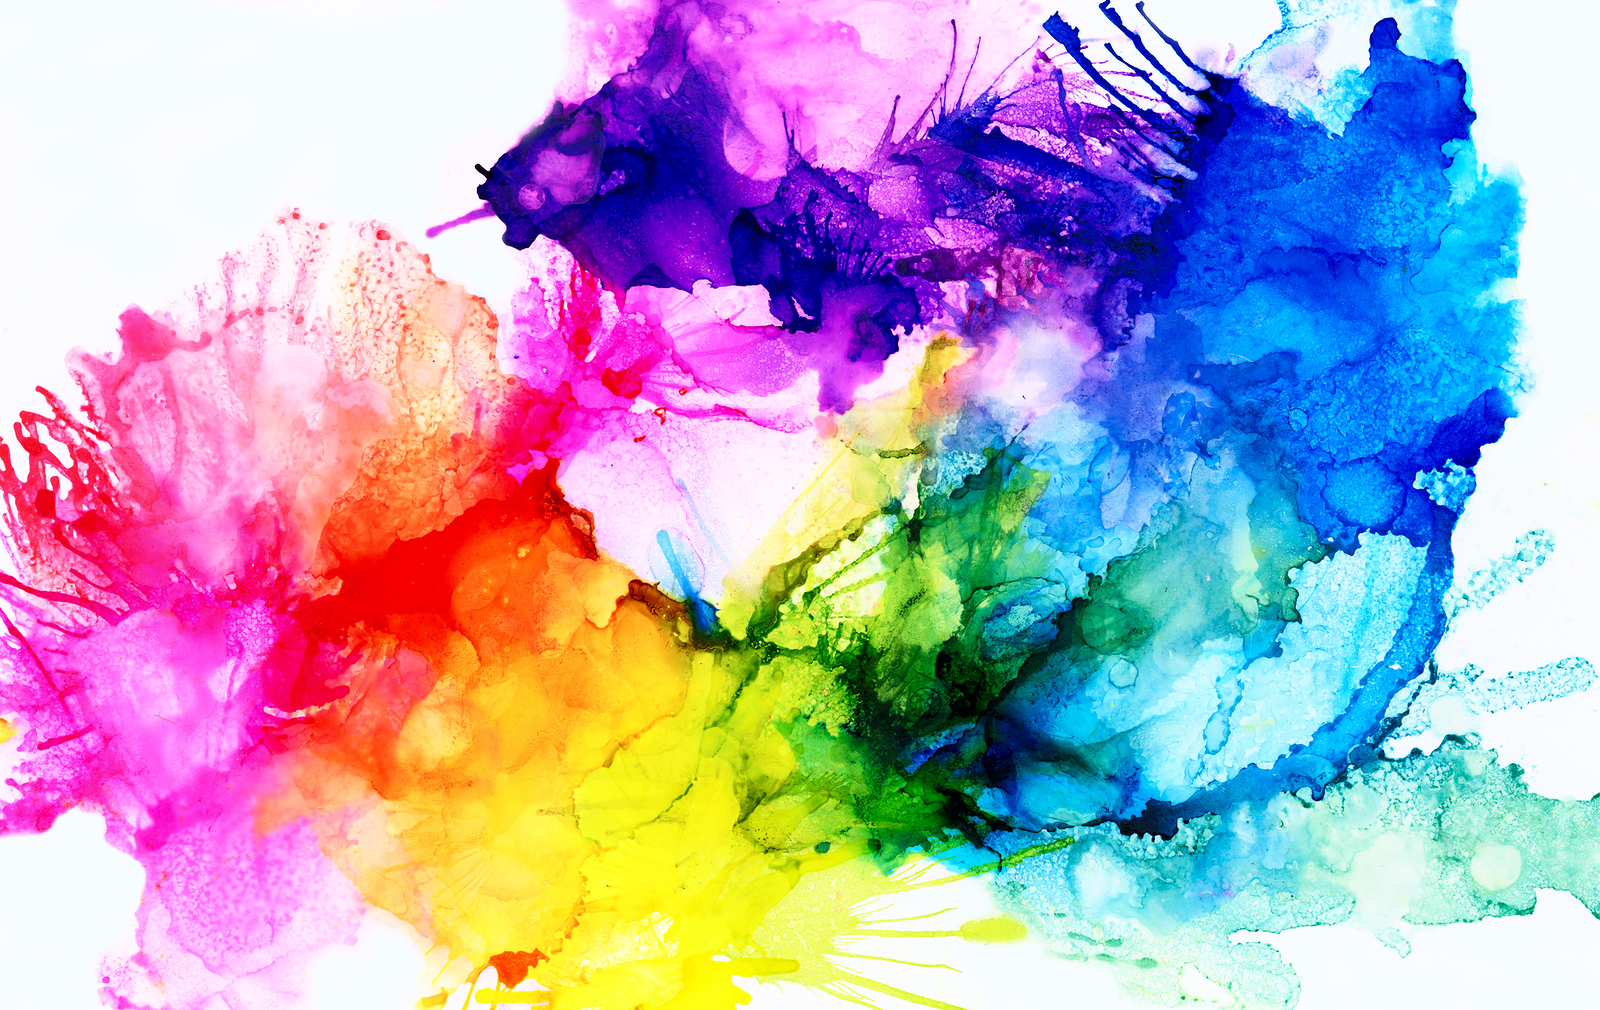 Abstract backdrop.Colorful painted background hand drawn with bright inks and watercolor paints. Bright color splashes and splatters create uneven artistic background.